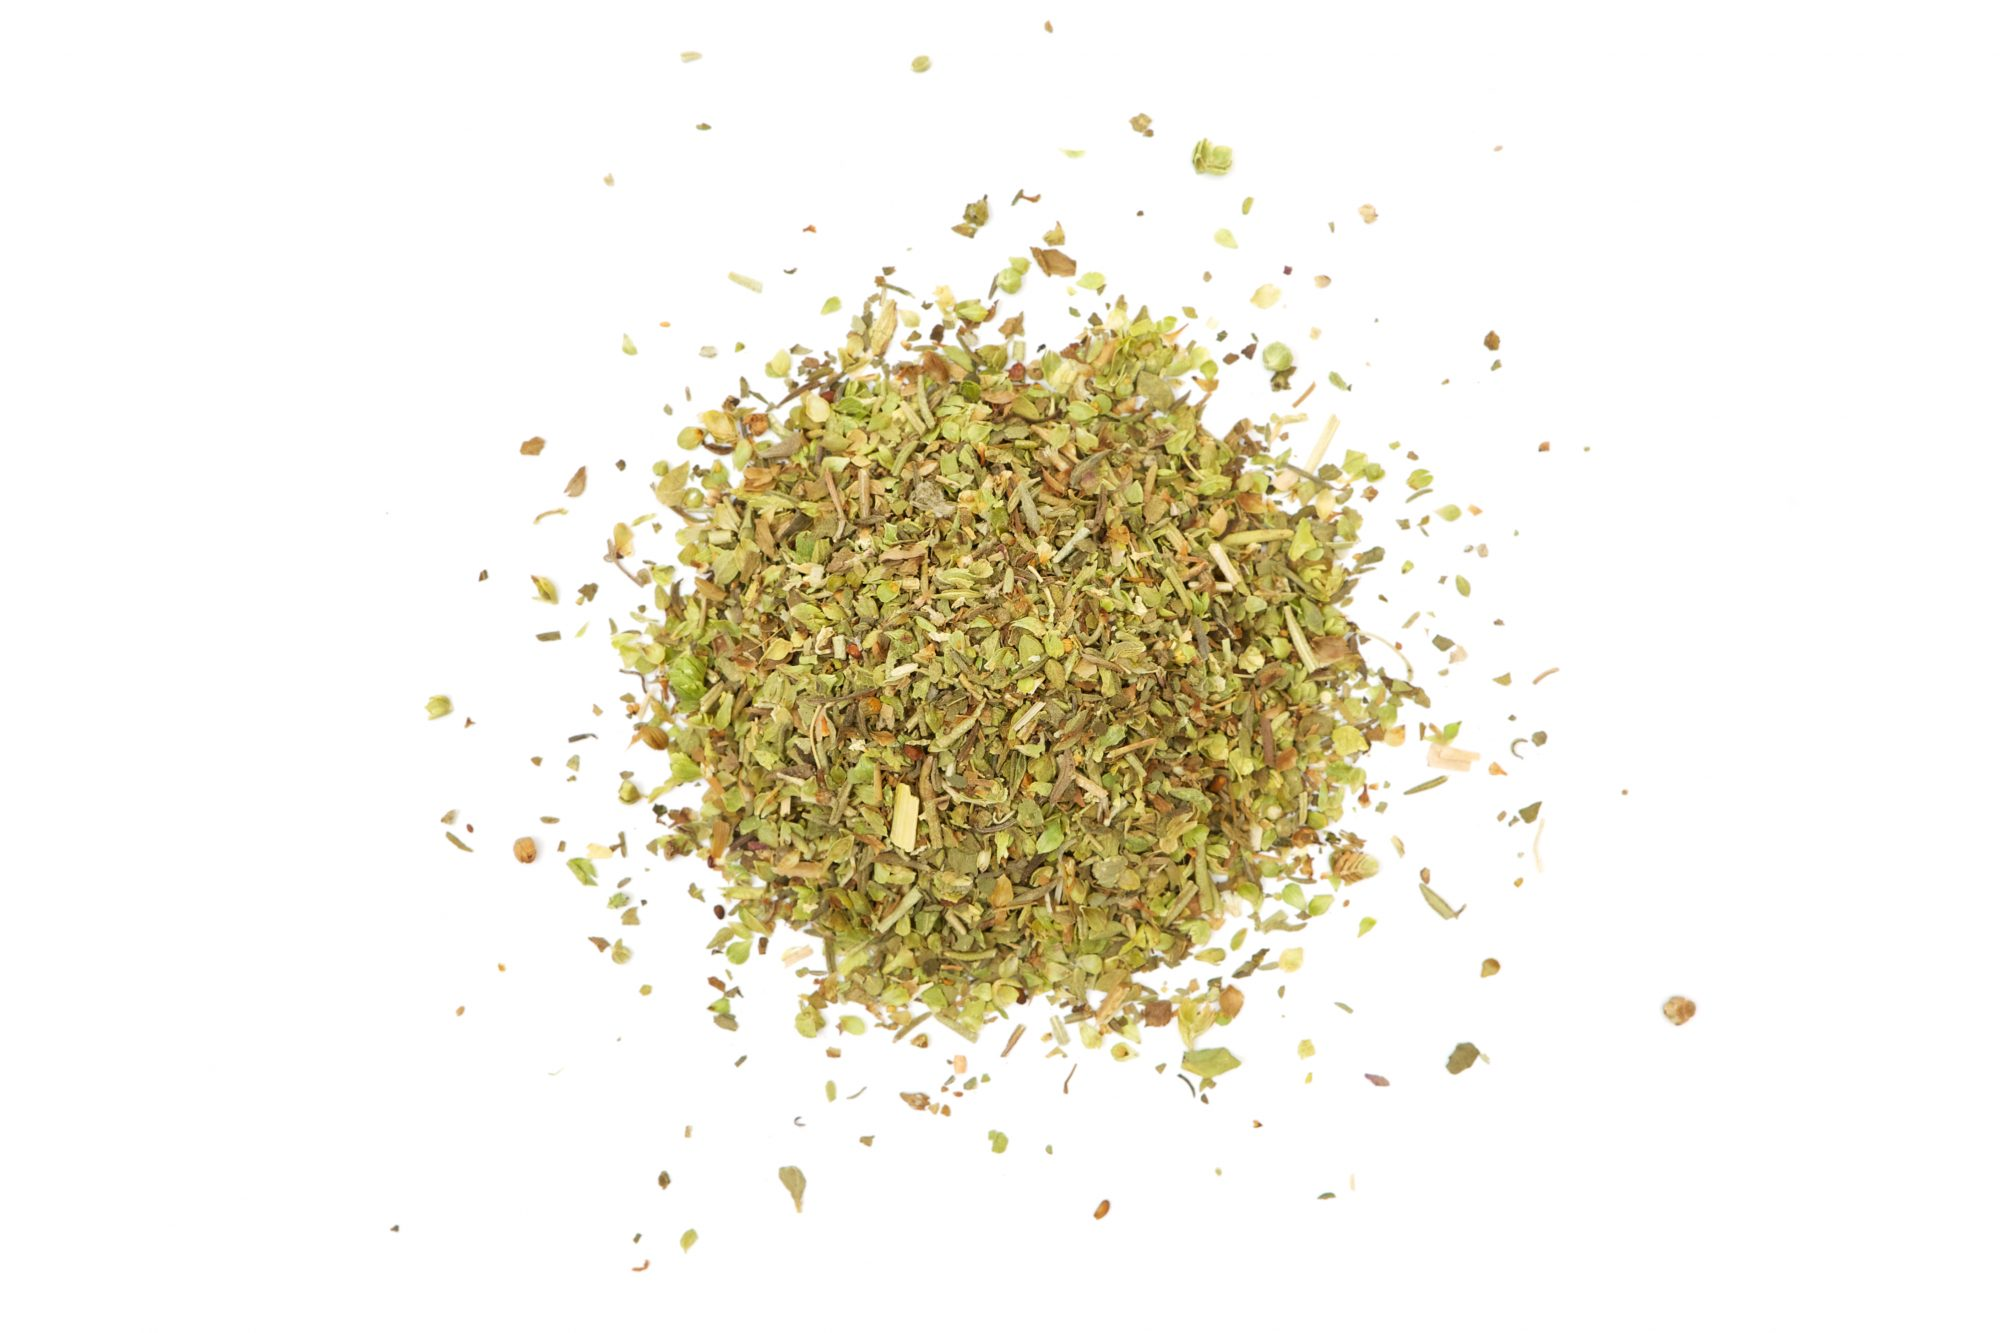 Italian seasoning on white background Getty 7/13/20